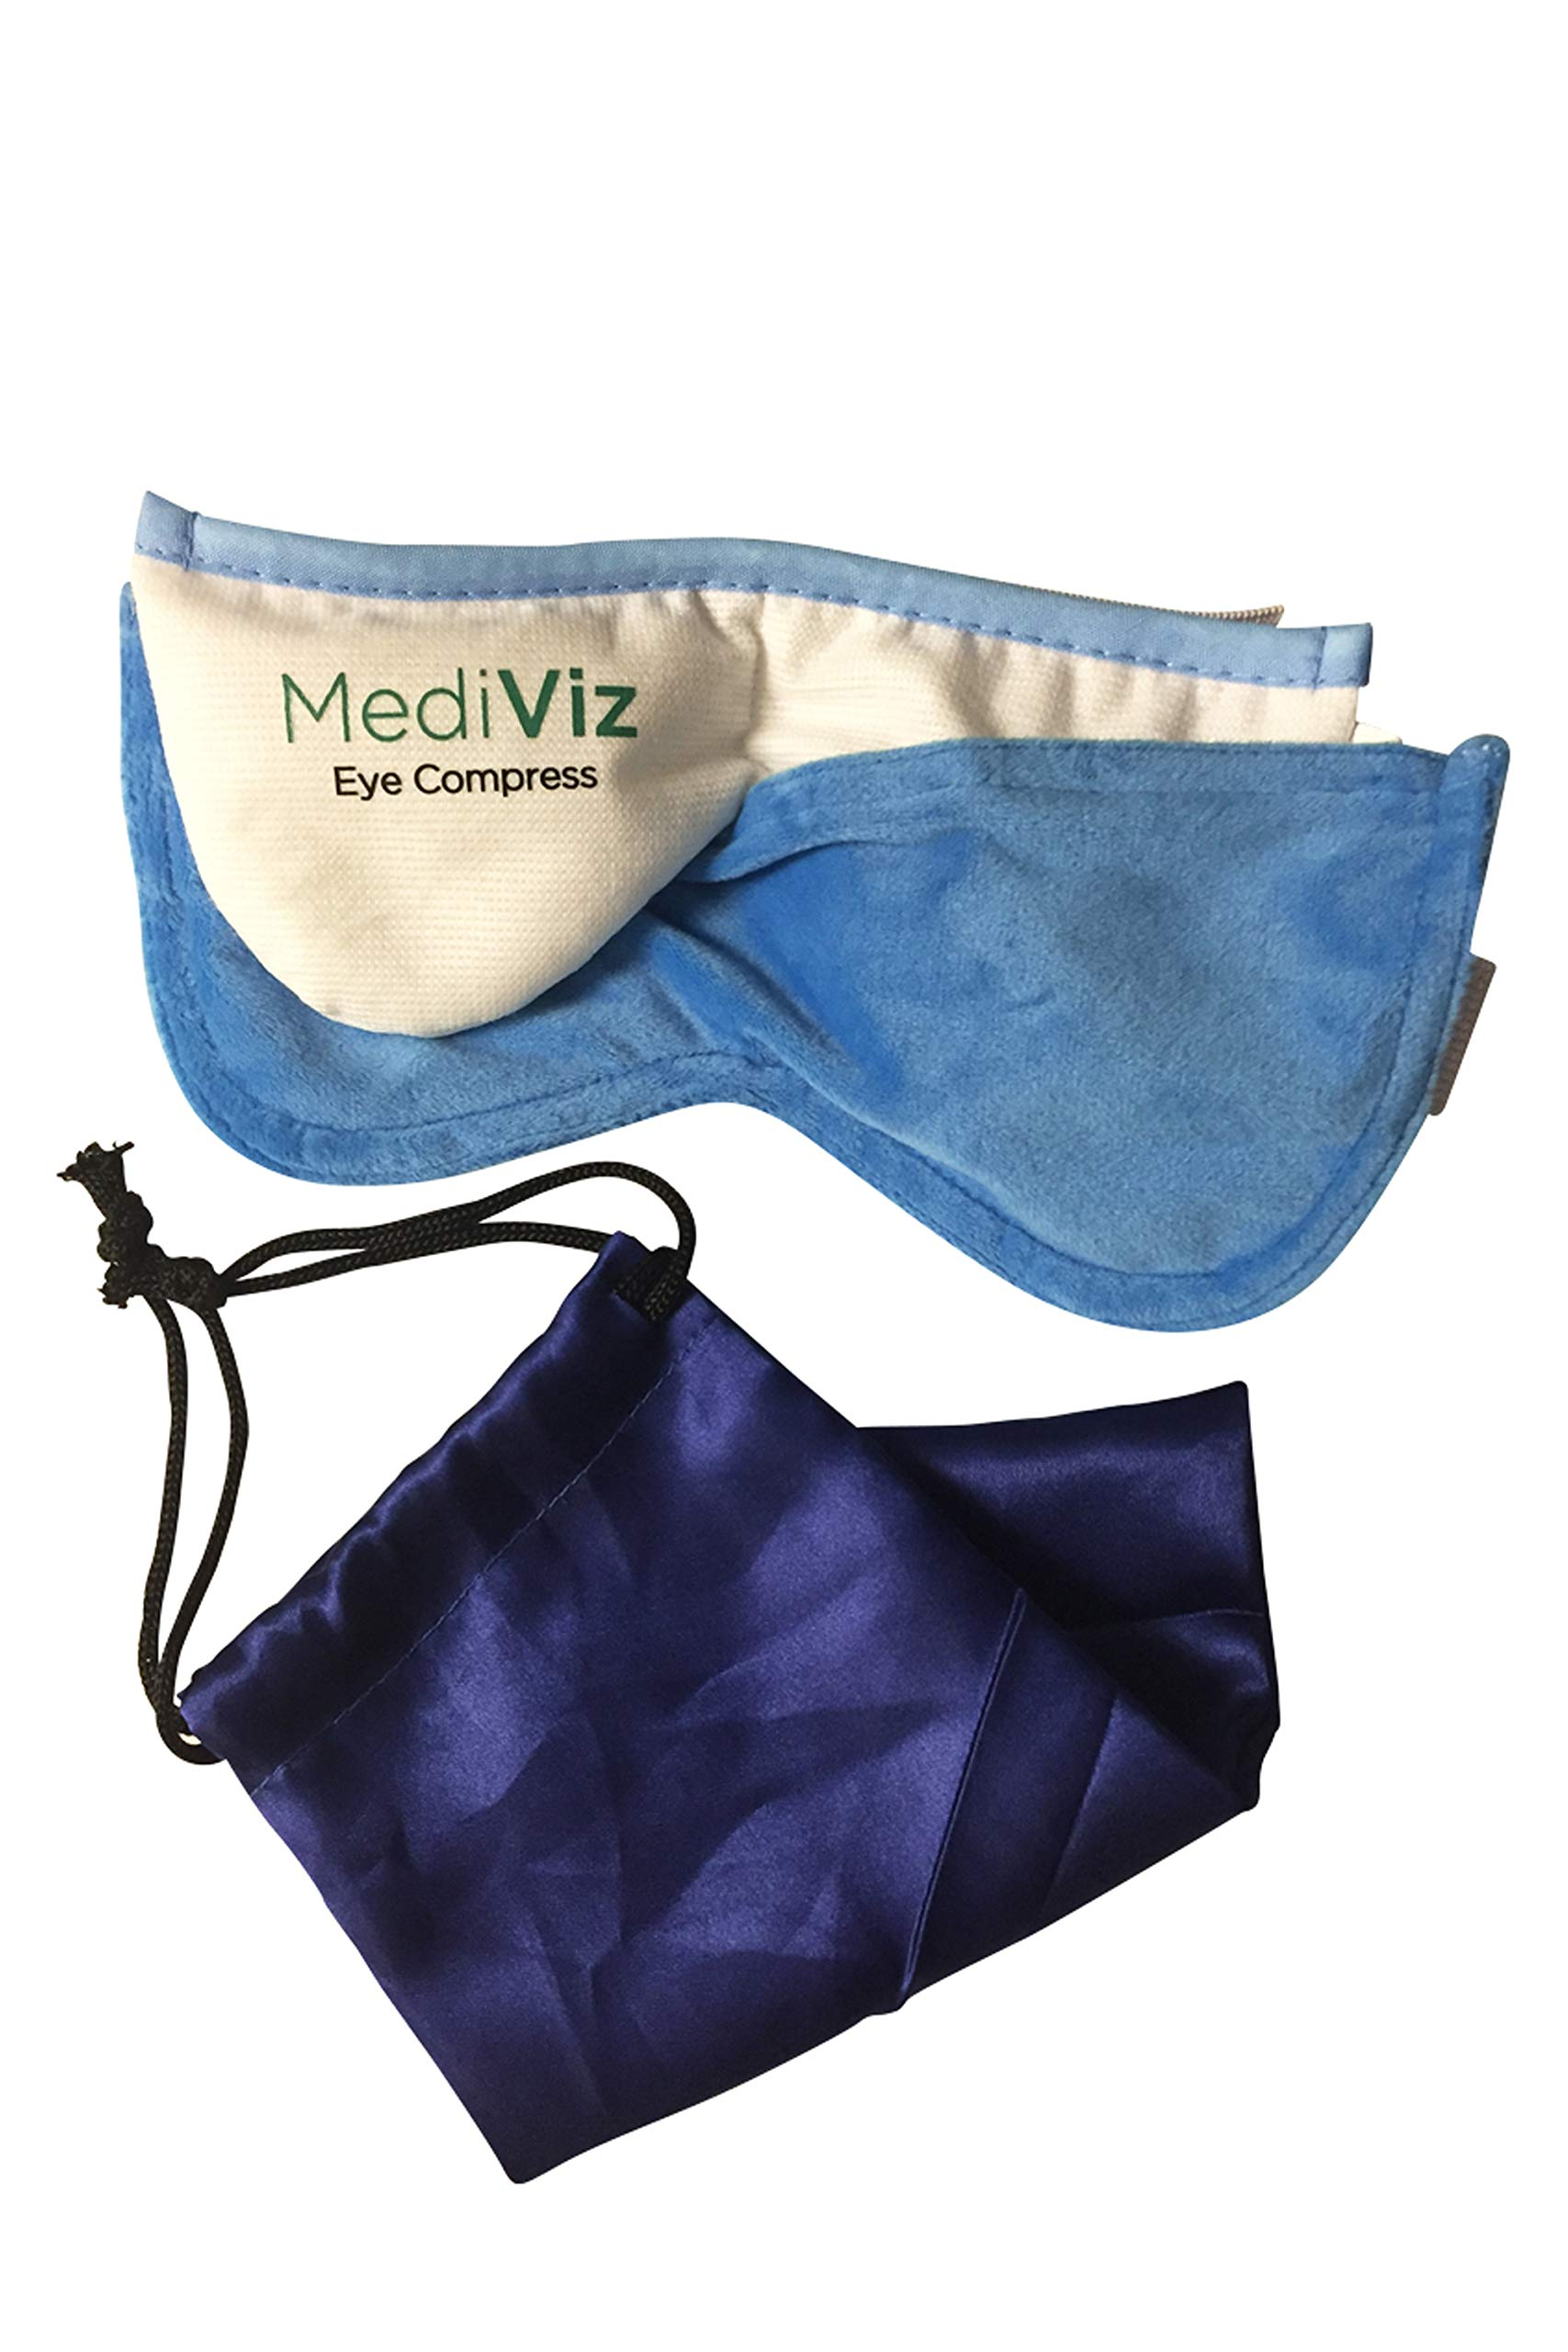 Mediviz Blepharitis Dry Eye Mask - With Removable Cover, Relieving Dry Eye Moist Heat Compress for Dry Eye, Styes, Meibomian Gland Dysfunction, Headaches, Sinuses, and Allergies (REMOVABLECASE) by MEDIVIZ